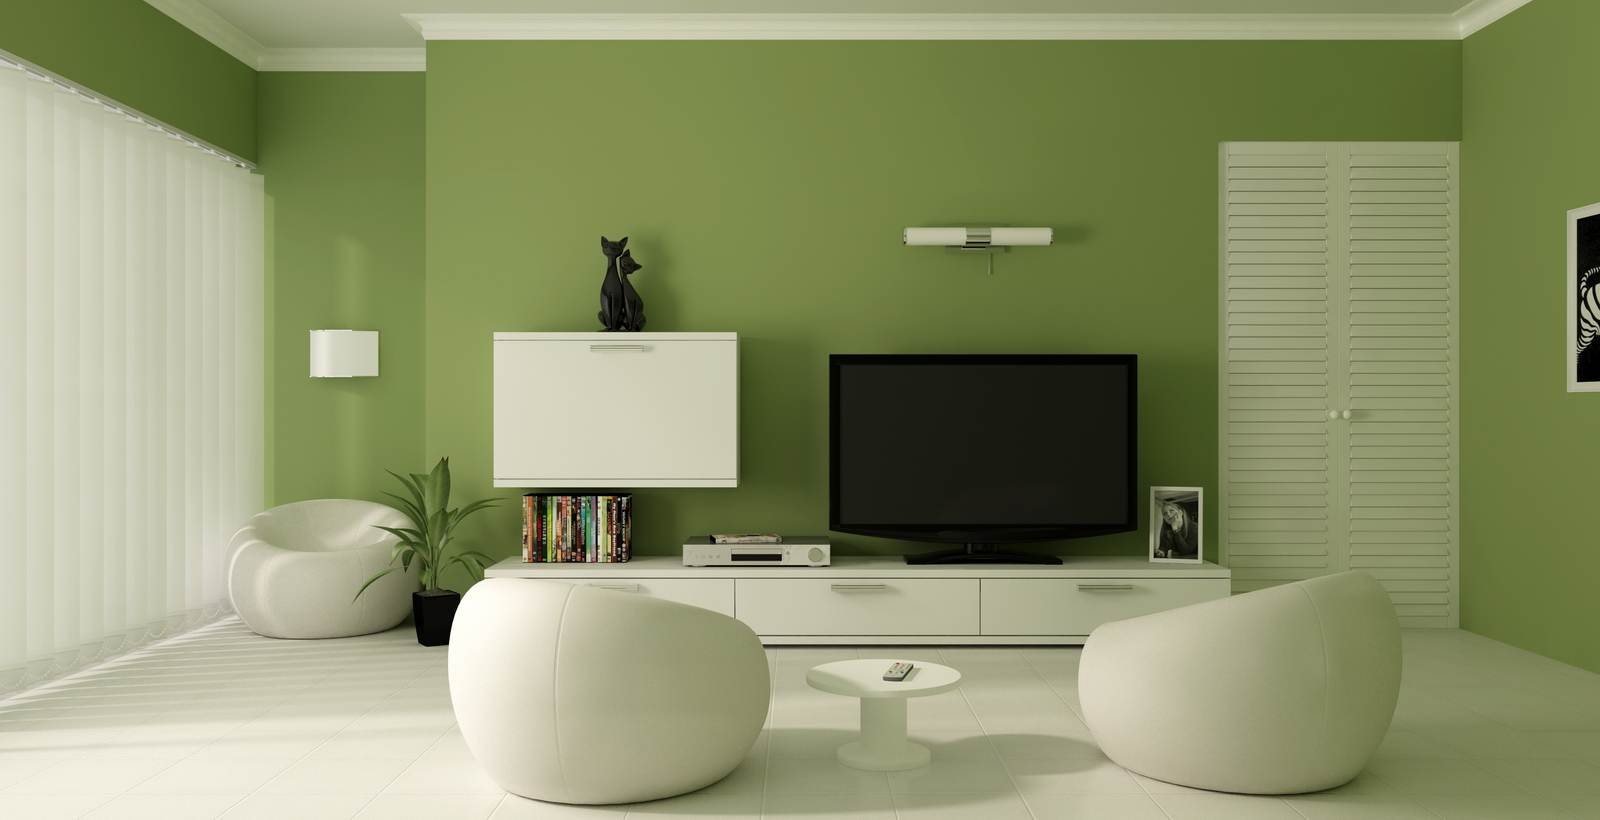 Attirant Paint Color Modern Living Room For 2013 Inspiration Design Green Paint. Living  Room Design Paint Colors Living Room Paint Color Home Design Ideas Pictures